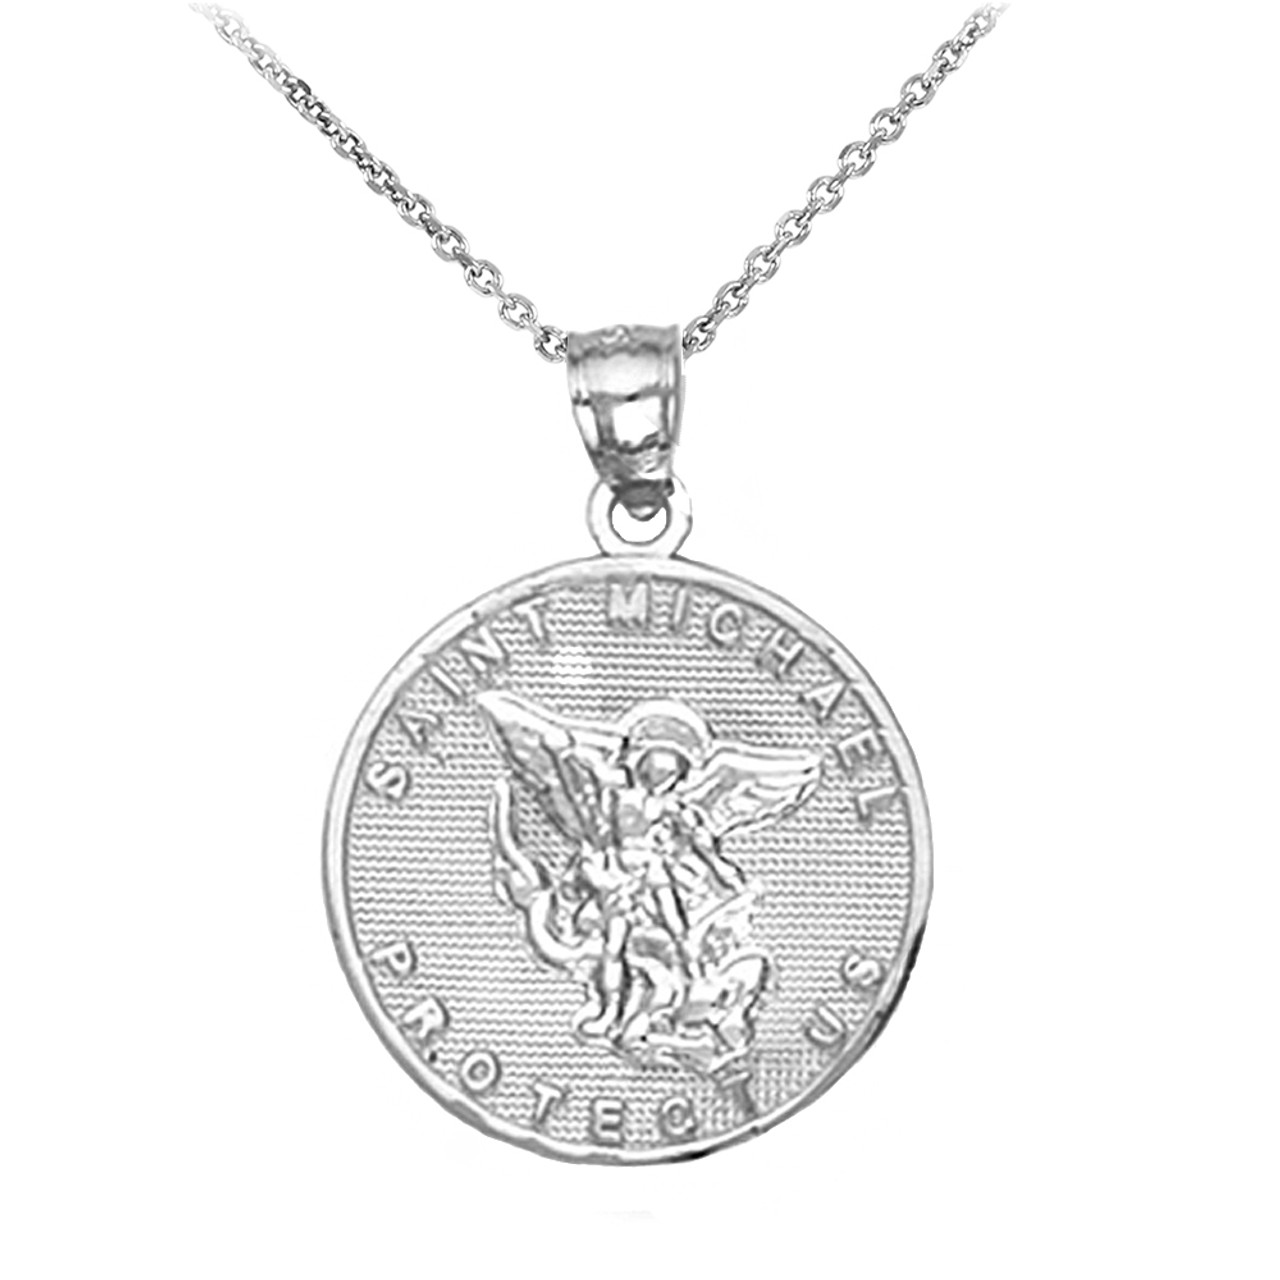 925 sterling silver saint michael pendant necklace saint michael silver coin pendant necklace aloadofball Gallery